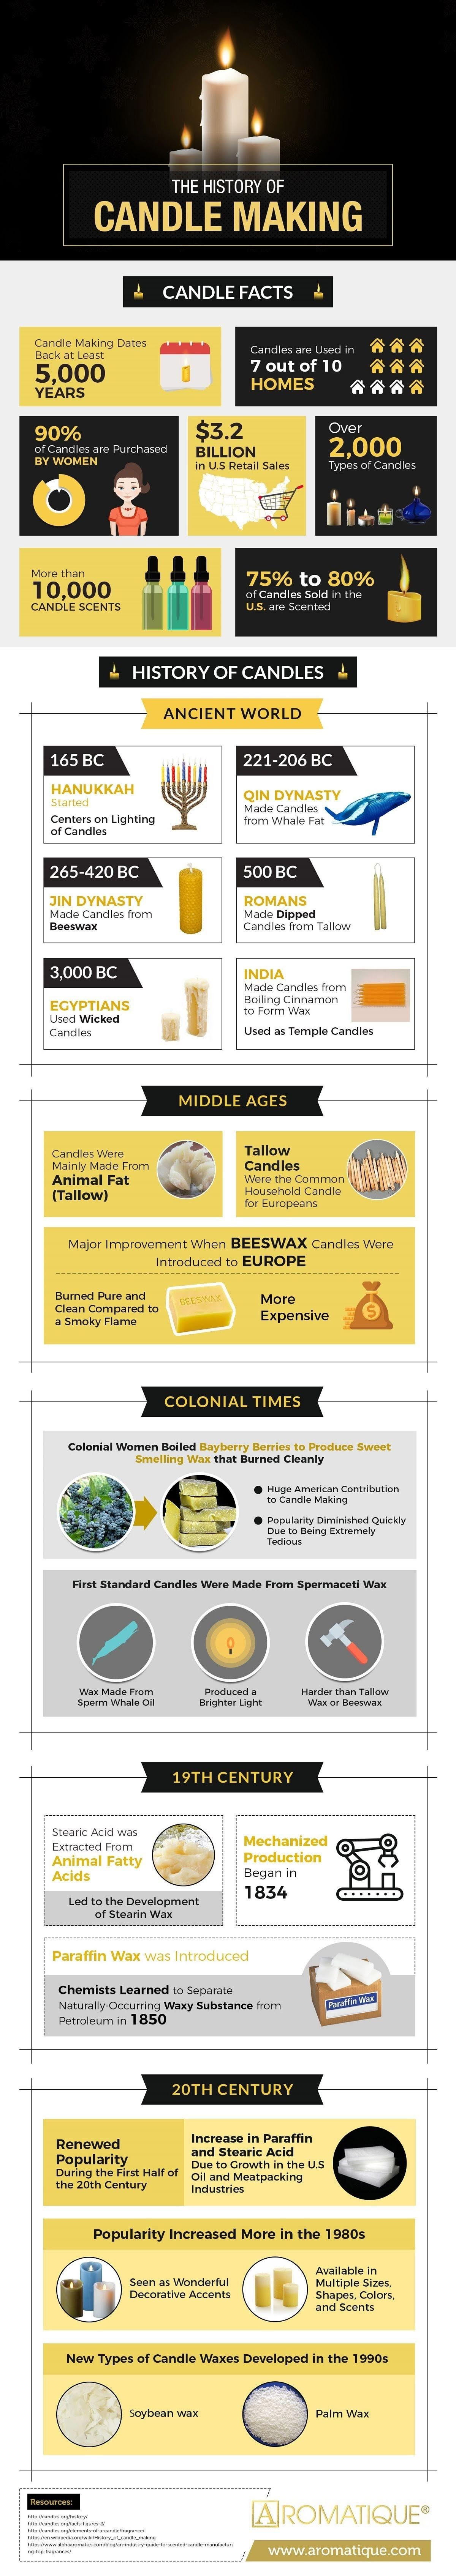 Candle Making History #infographic